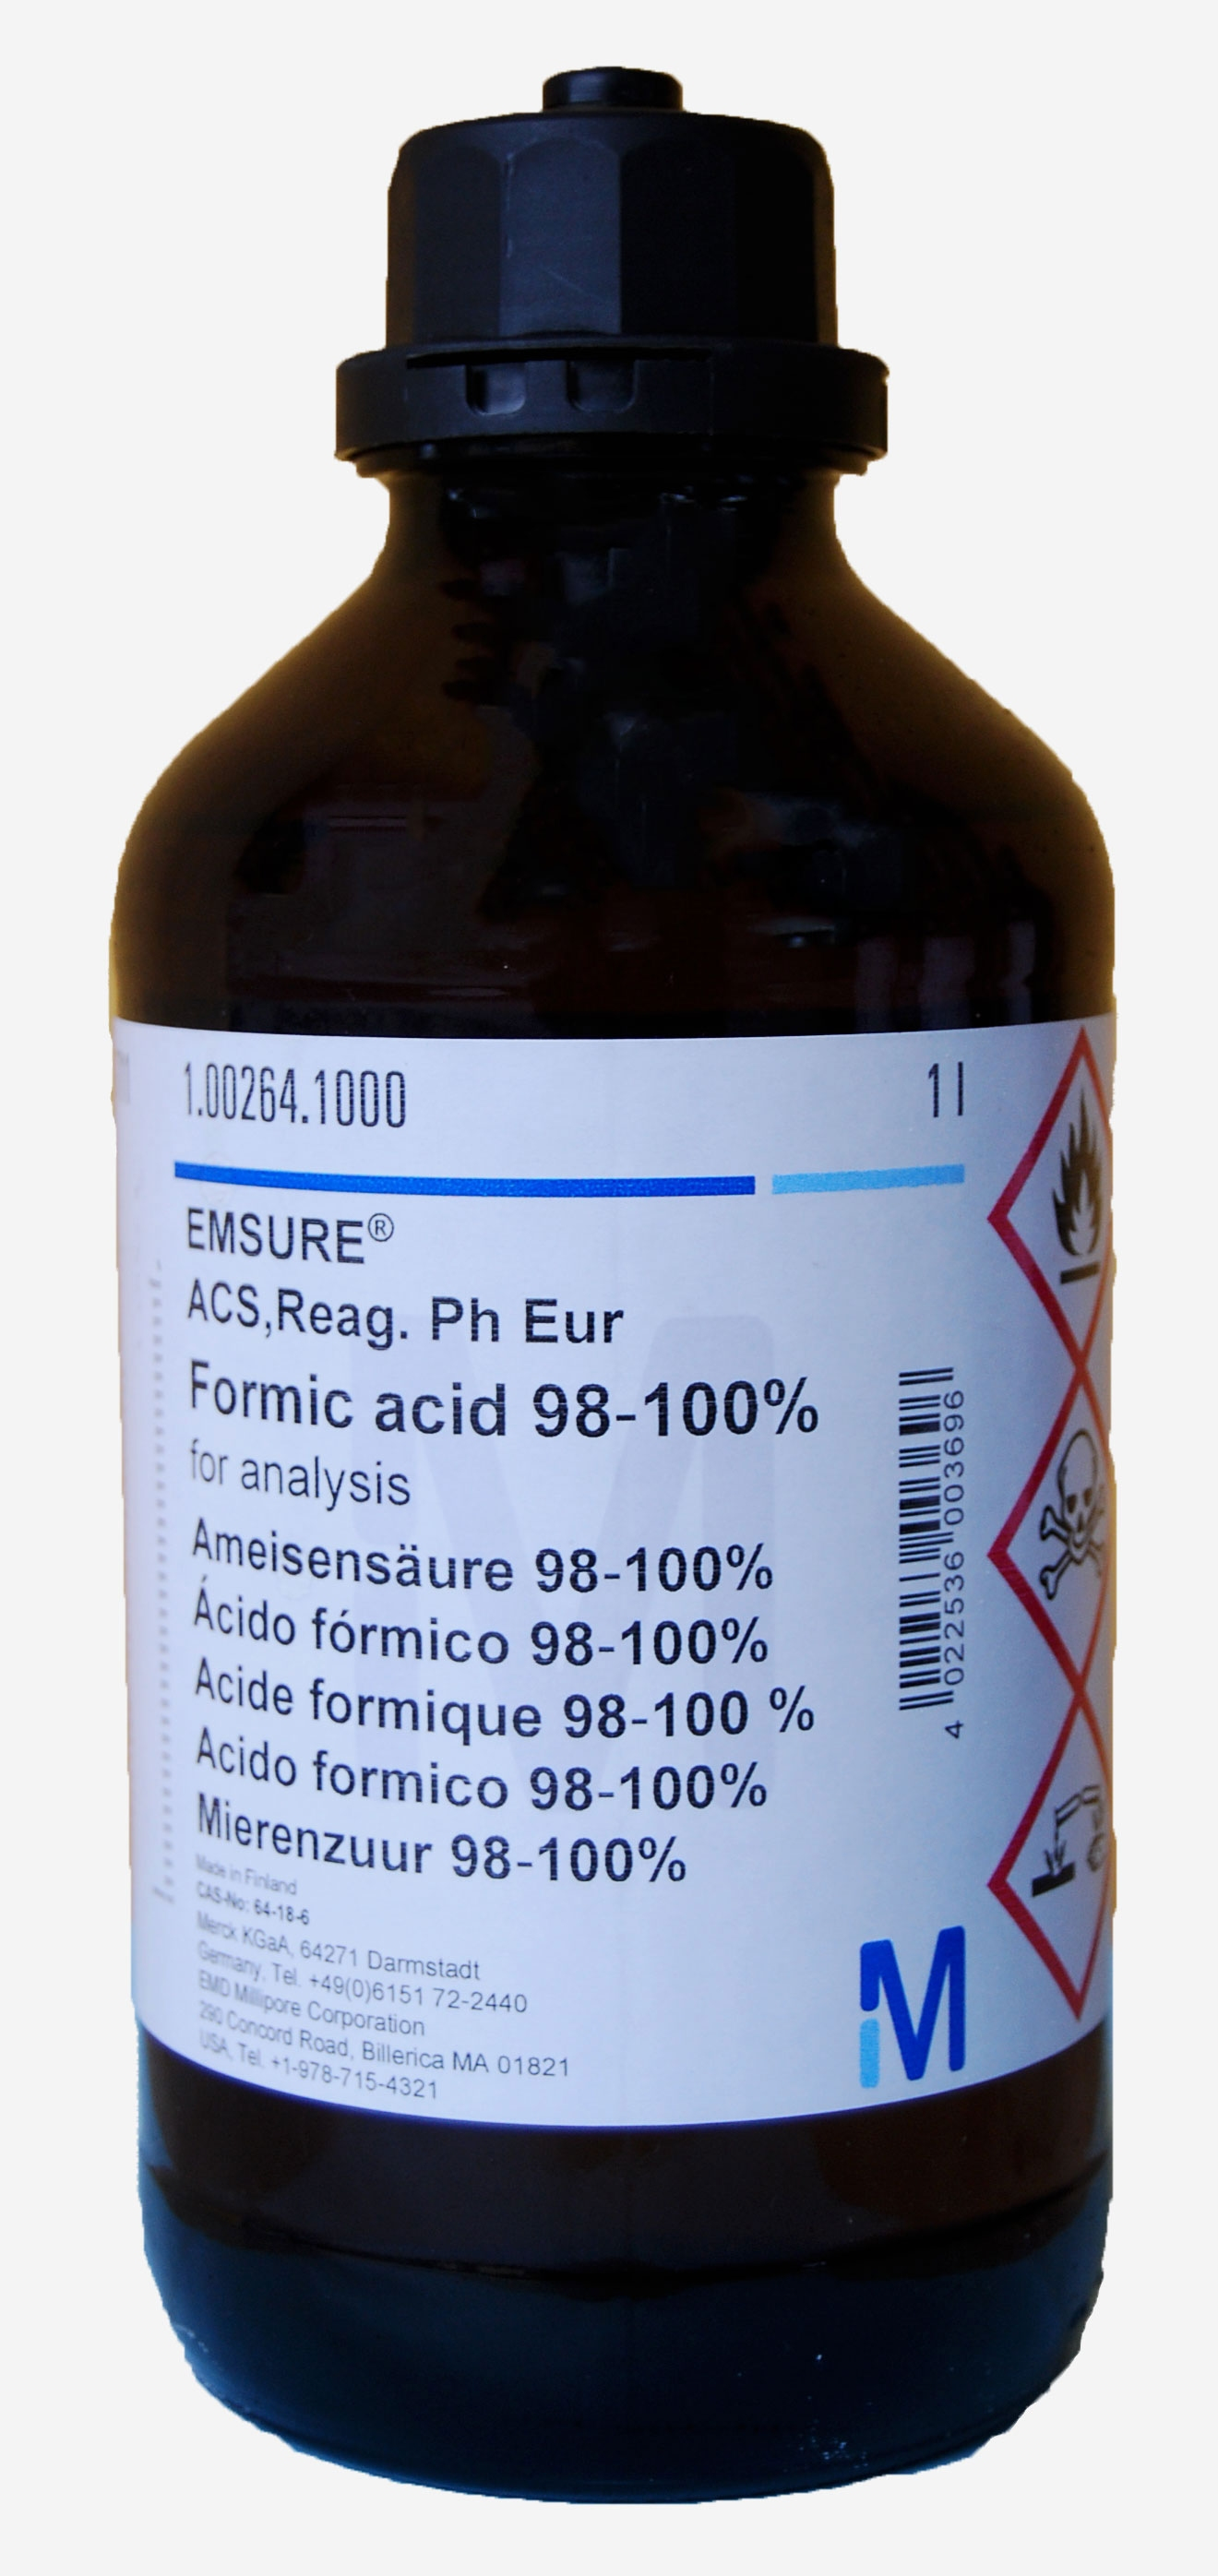 Formic acid 98-100% for analysis EMSURE® ACS,Reag. Ph Eur